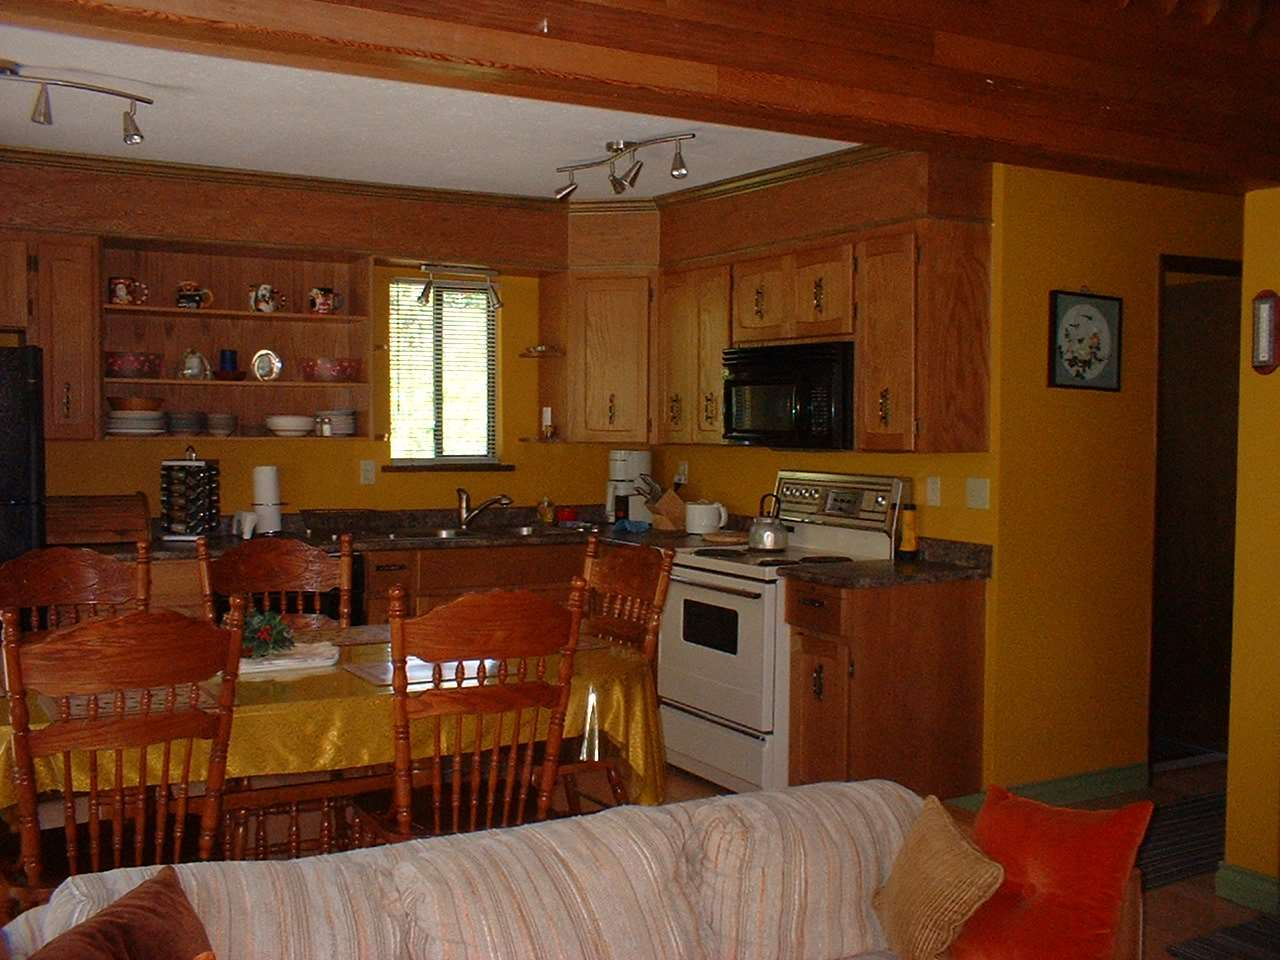 Great 3 bedroom 2 bath unit with a view of the ski runs. Located in the centre of the village just steps to the cross country trails system. The spacious living area features a gas fireplace with lots of windows. The owner is motivated to sell.